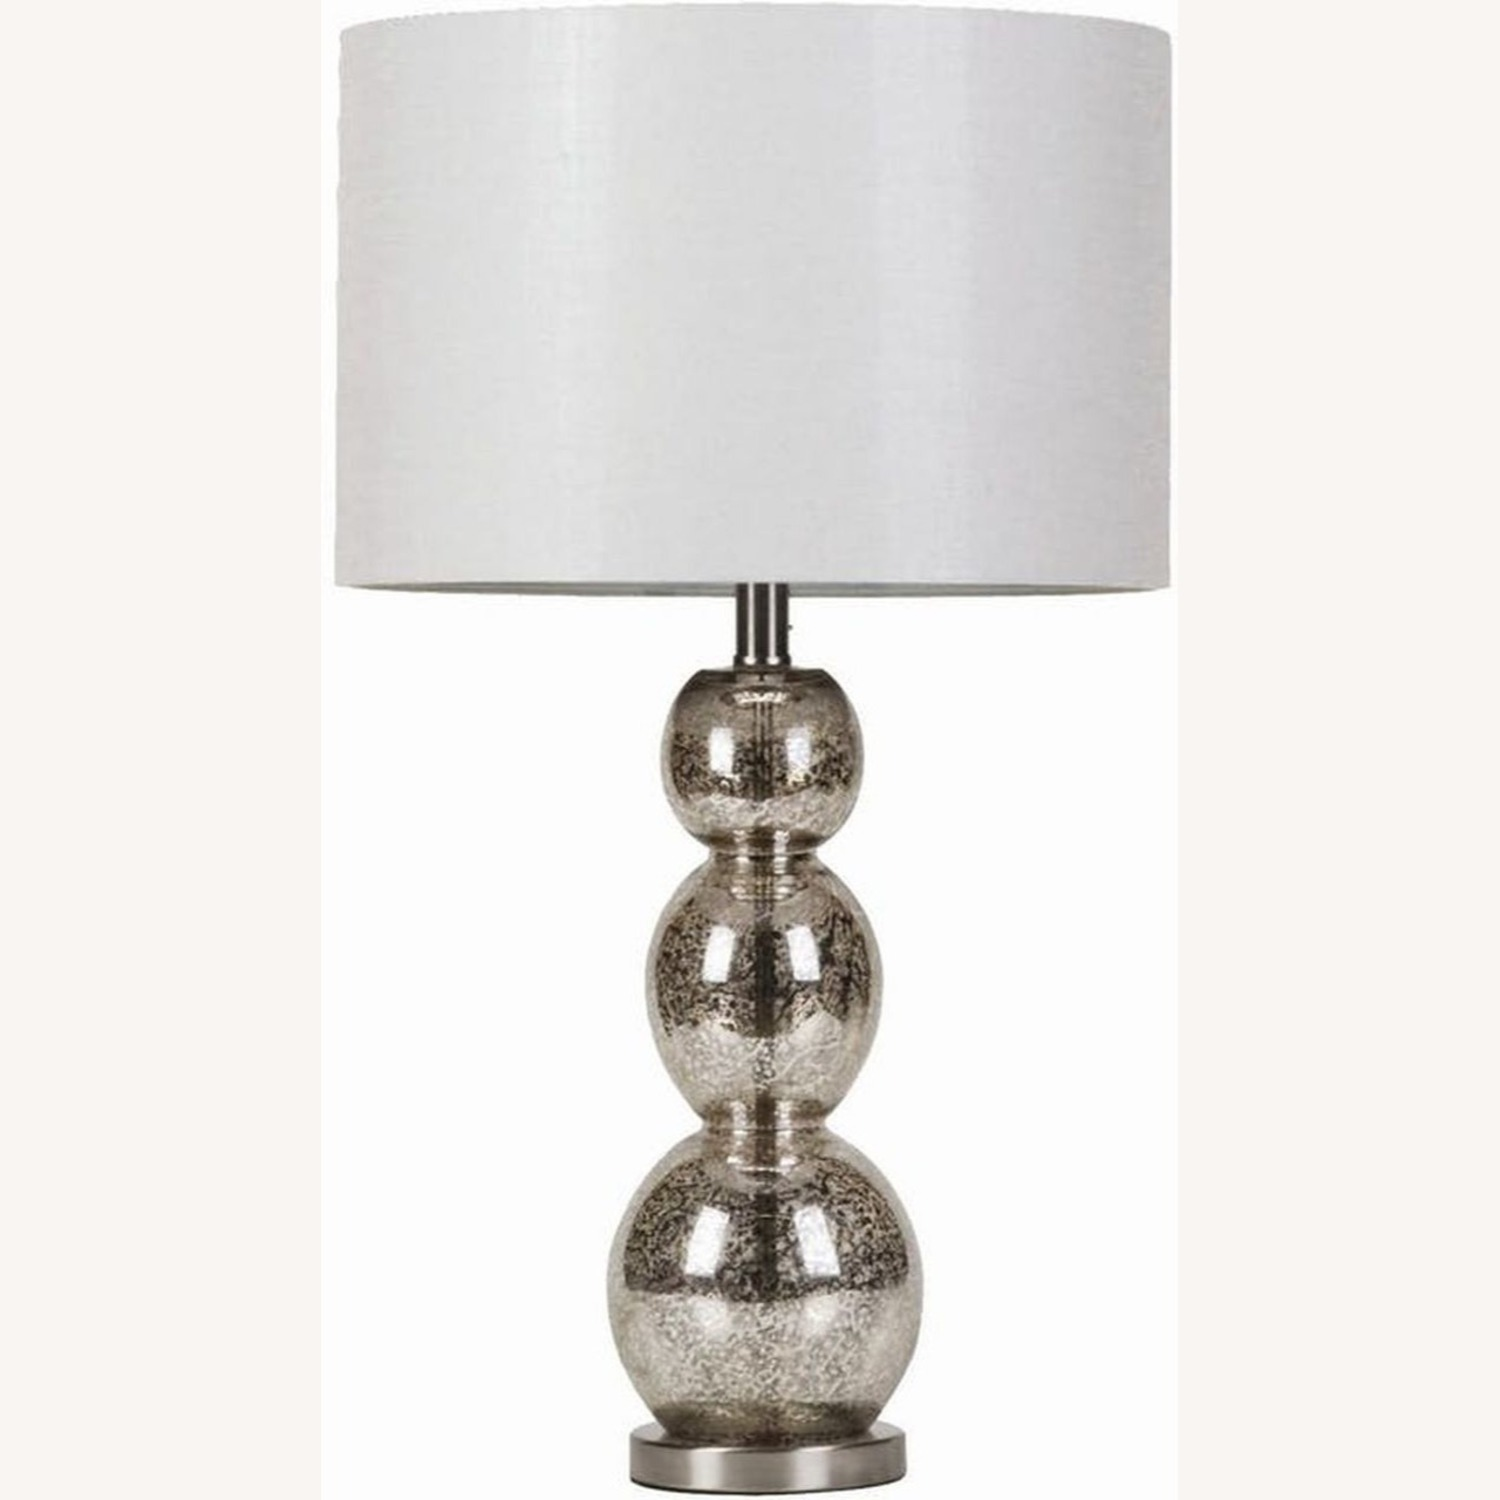 Table Lamp W Graduated Sphere Base - image-0